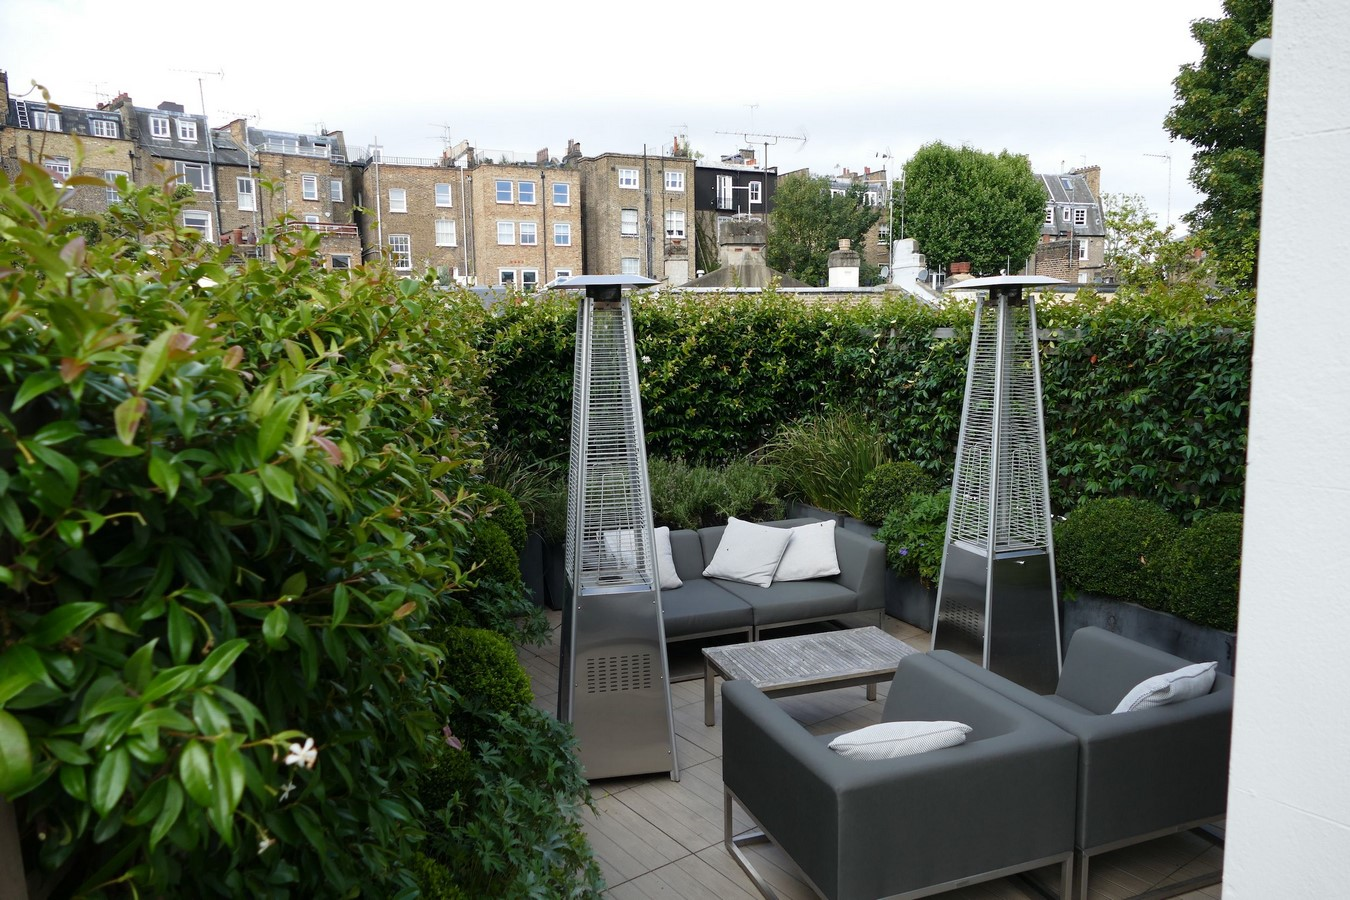 10 things to remember when designing rooftop gardens - Sheet6